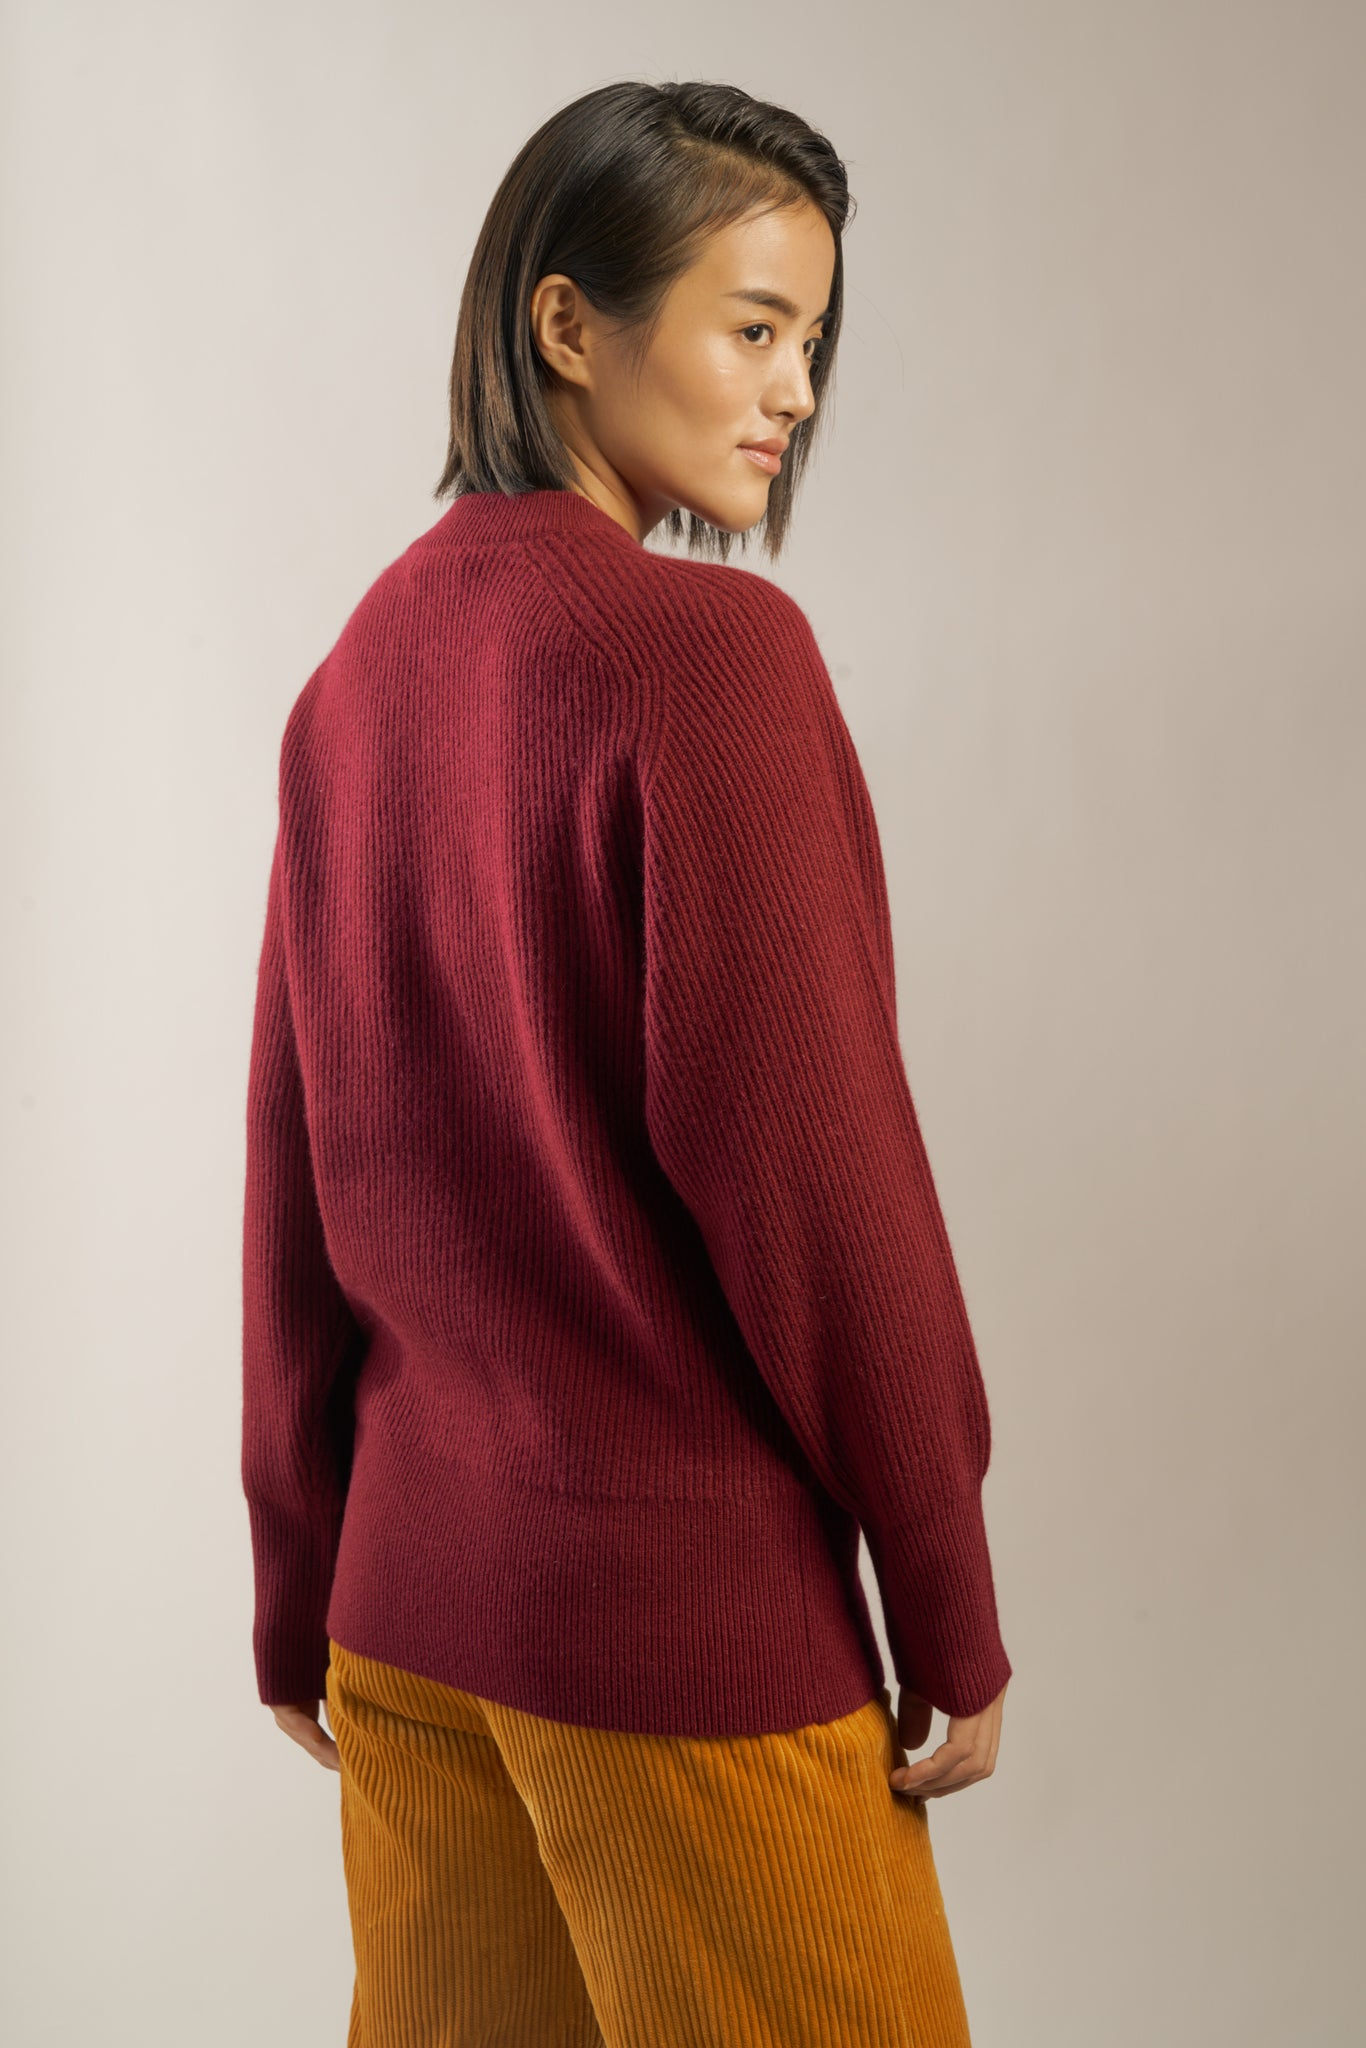 The 'Delft' Mockneck in Bourgogne